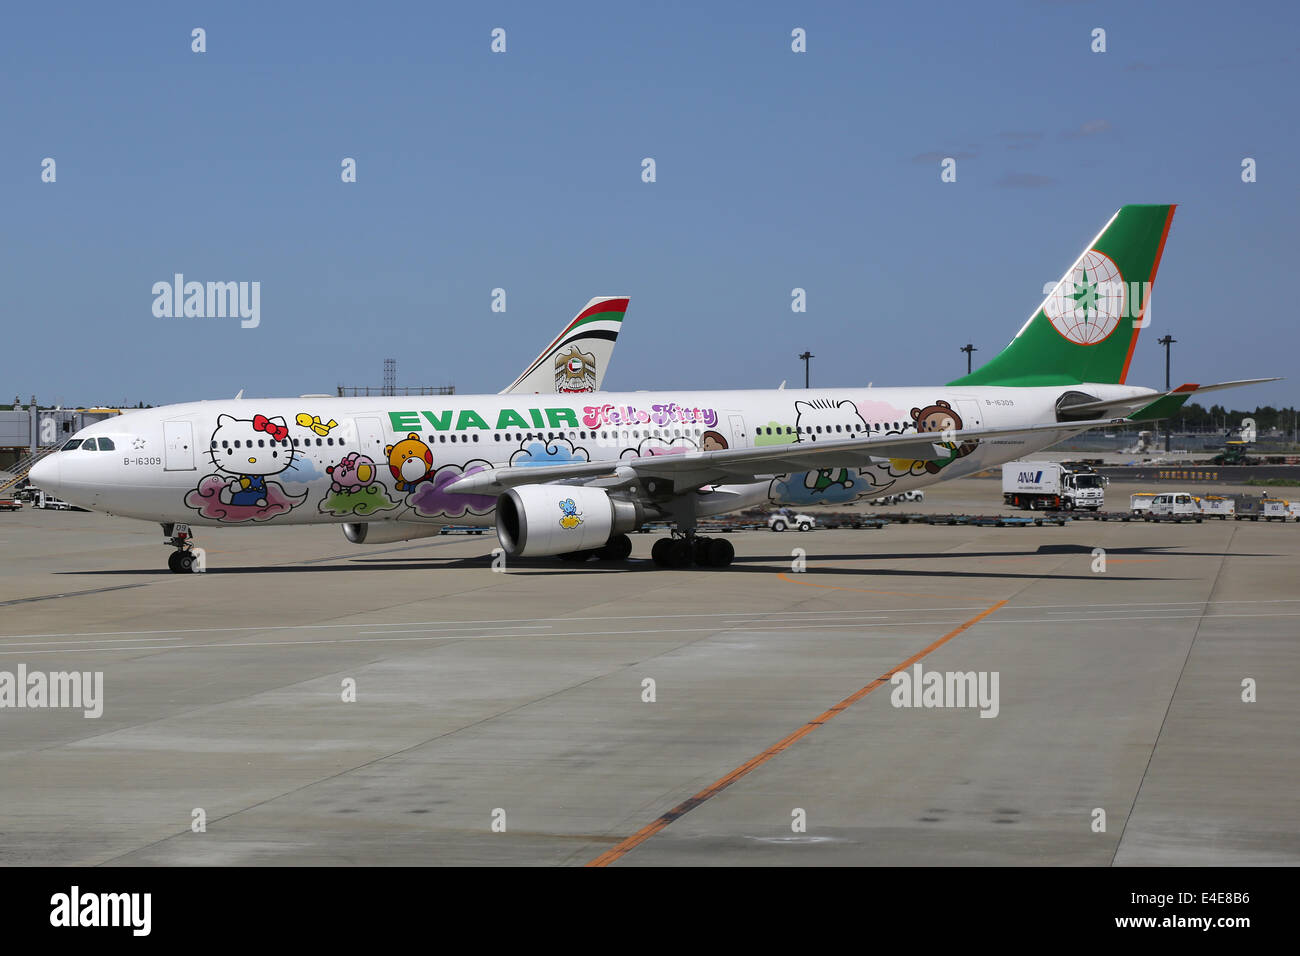 Tokyo Narita, Japan - May 17, 2014: An EVA Air Airbus A330-200 with the registration B-16309 in the Hello Kitty - Stock Image